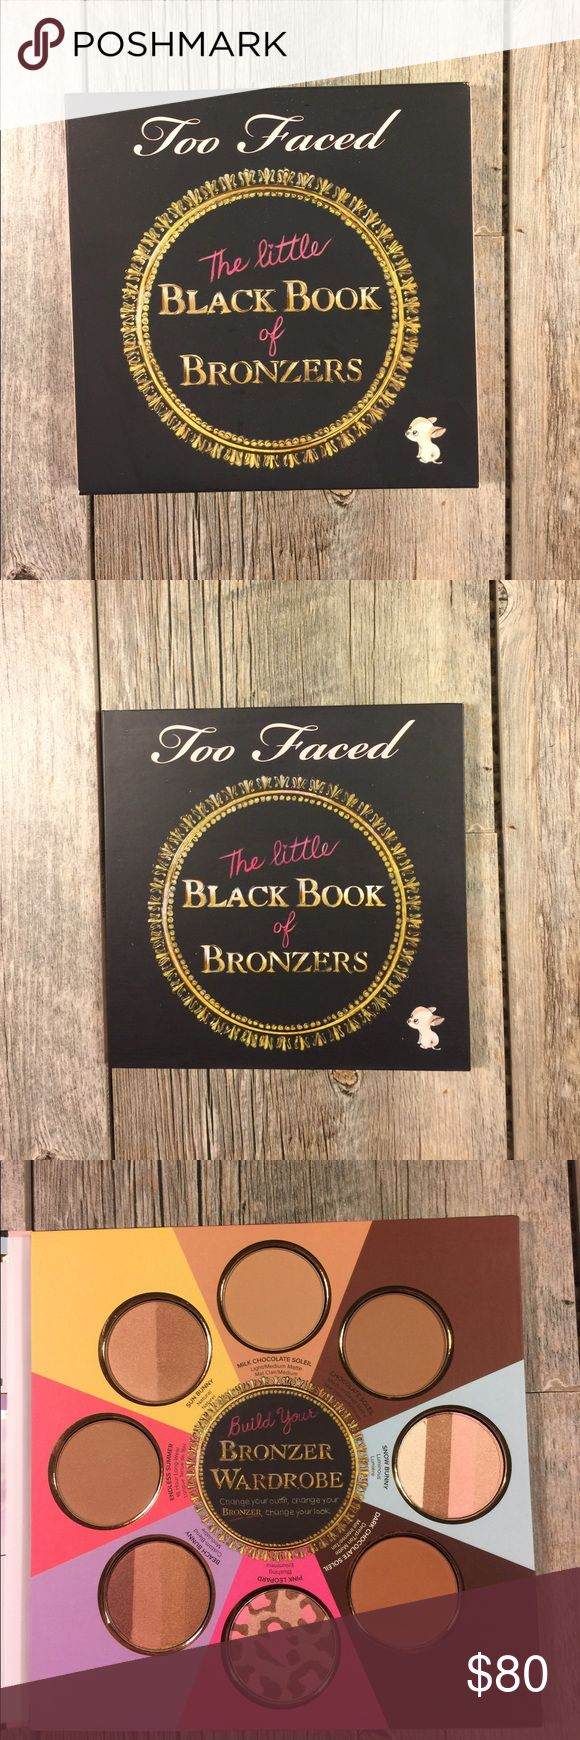 NWT TooFaced Little Black Book of Bronzer NWT TooFaced Little Black Book of Bronzer. 8 2.5g of too faced most popular bronzers. Never used, it is new. Only opened to take this pic and to verify it is in perfect condition. Too Faced Makeup